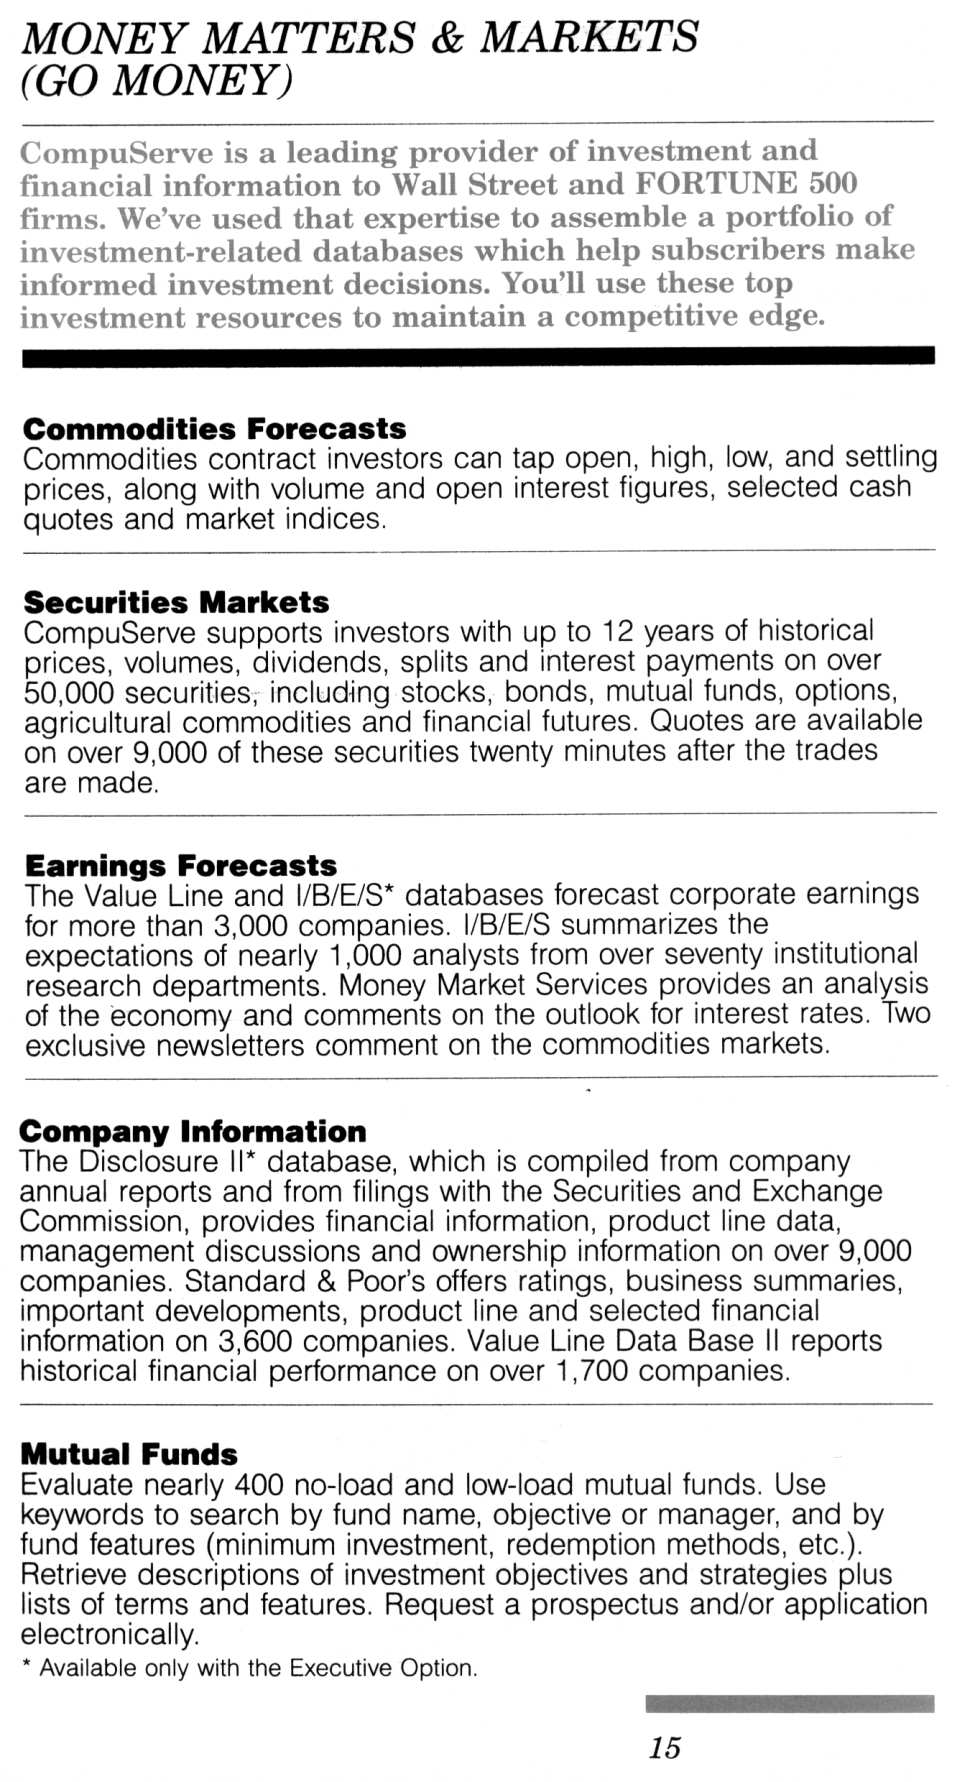 [CompuServe IntroPak page 15/44  Money Matters & Markets (GO MONEY)]